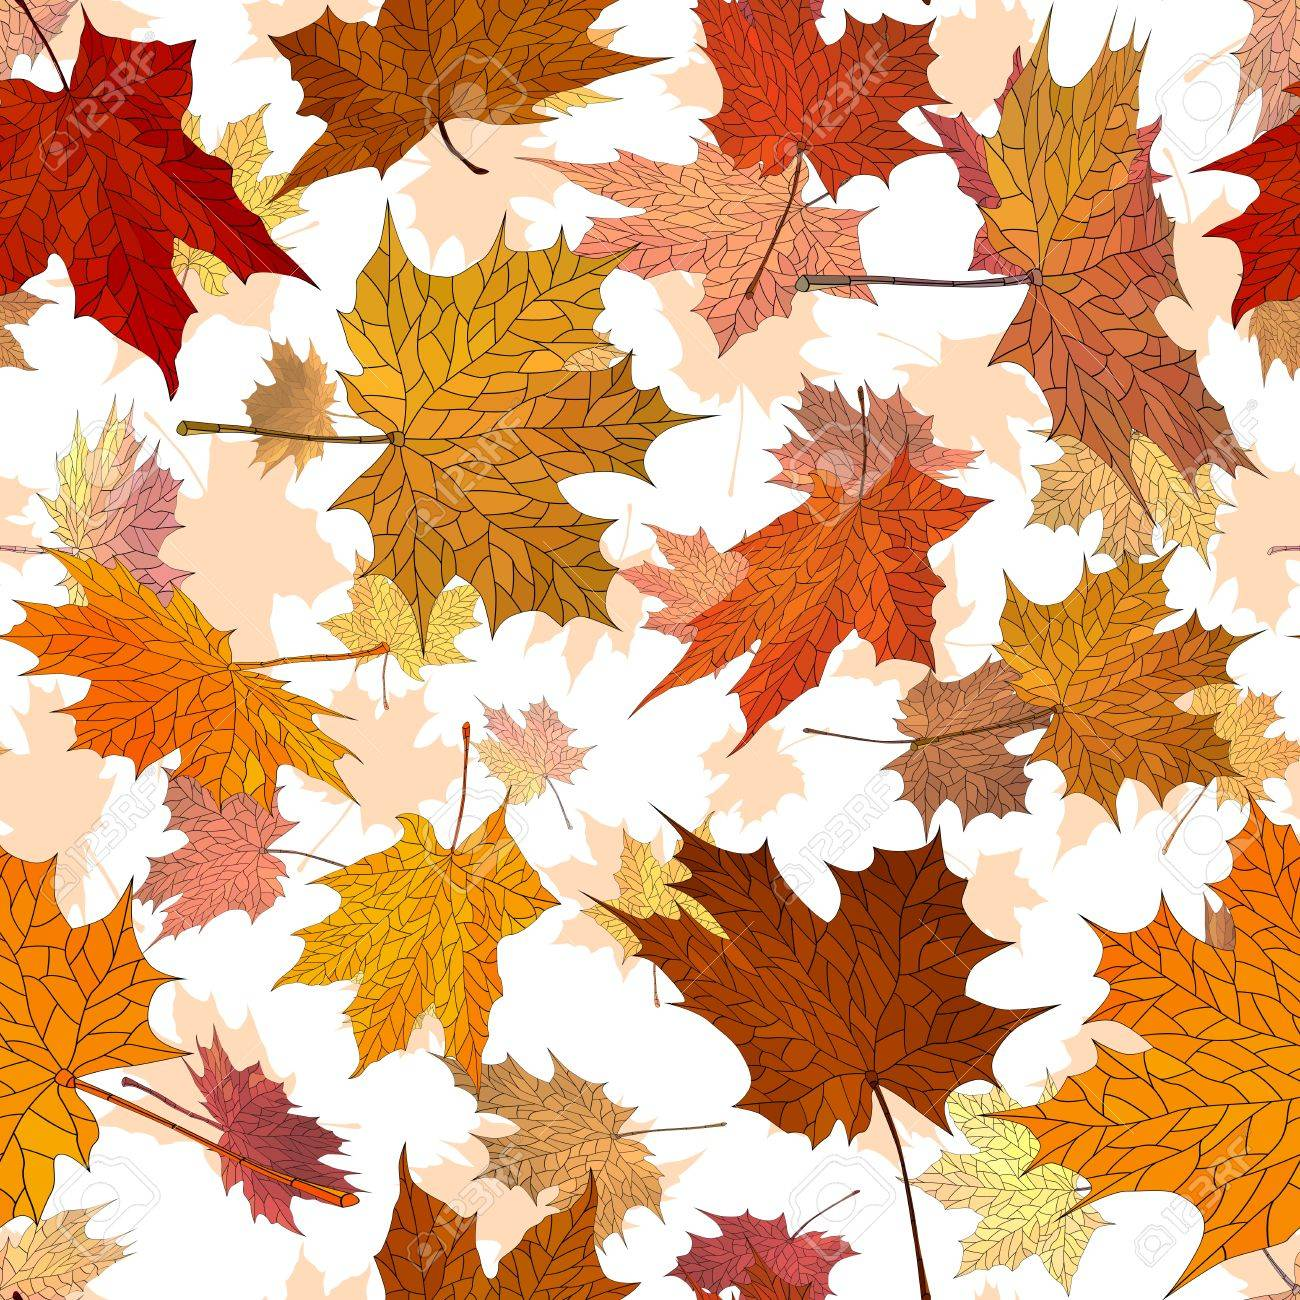 Vector seamless background: a lot of falling autumn maple leaves in air. Stock Vector - 18246499